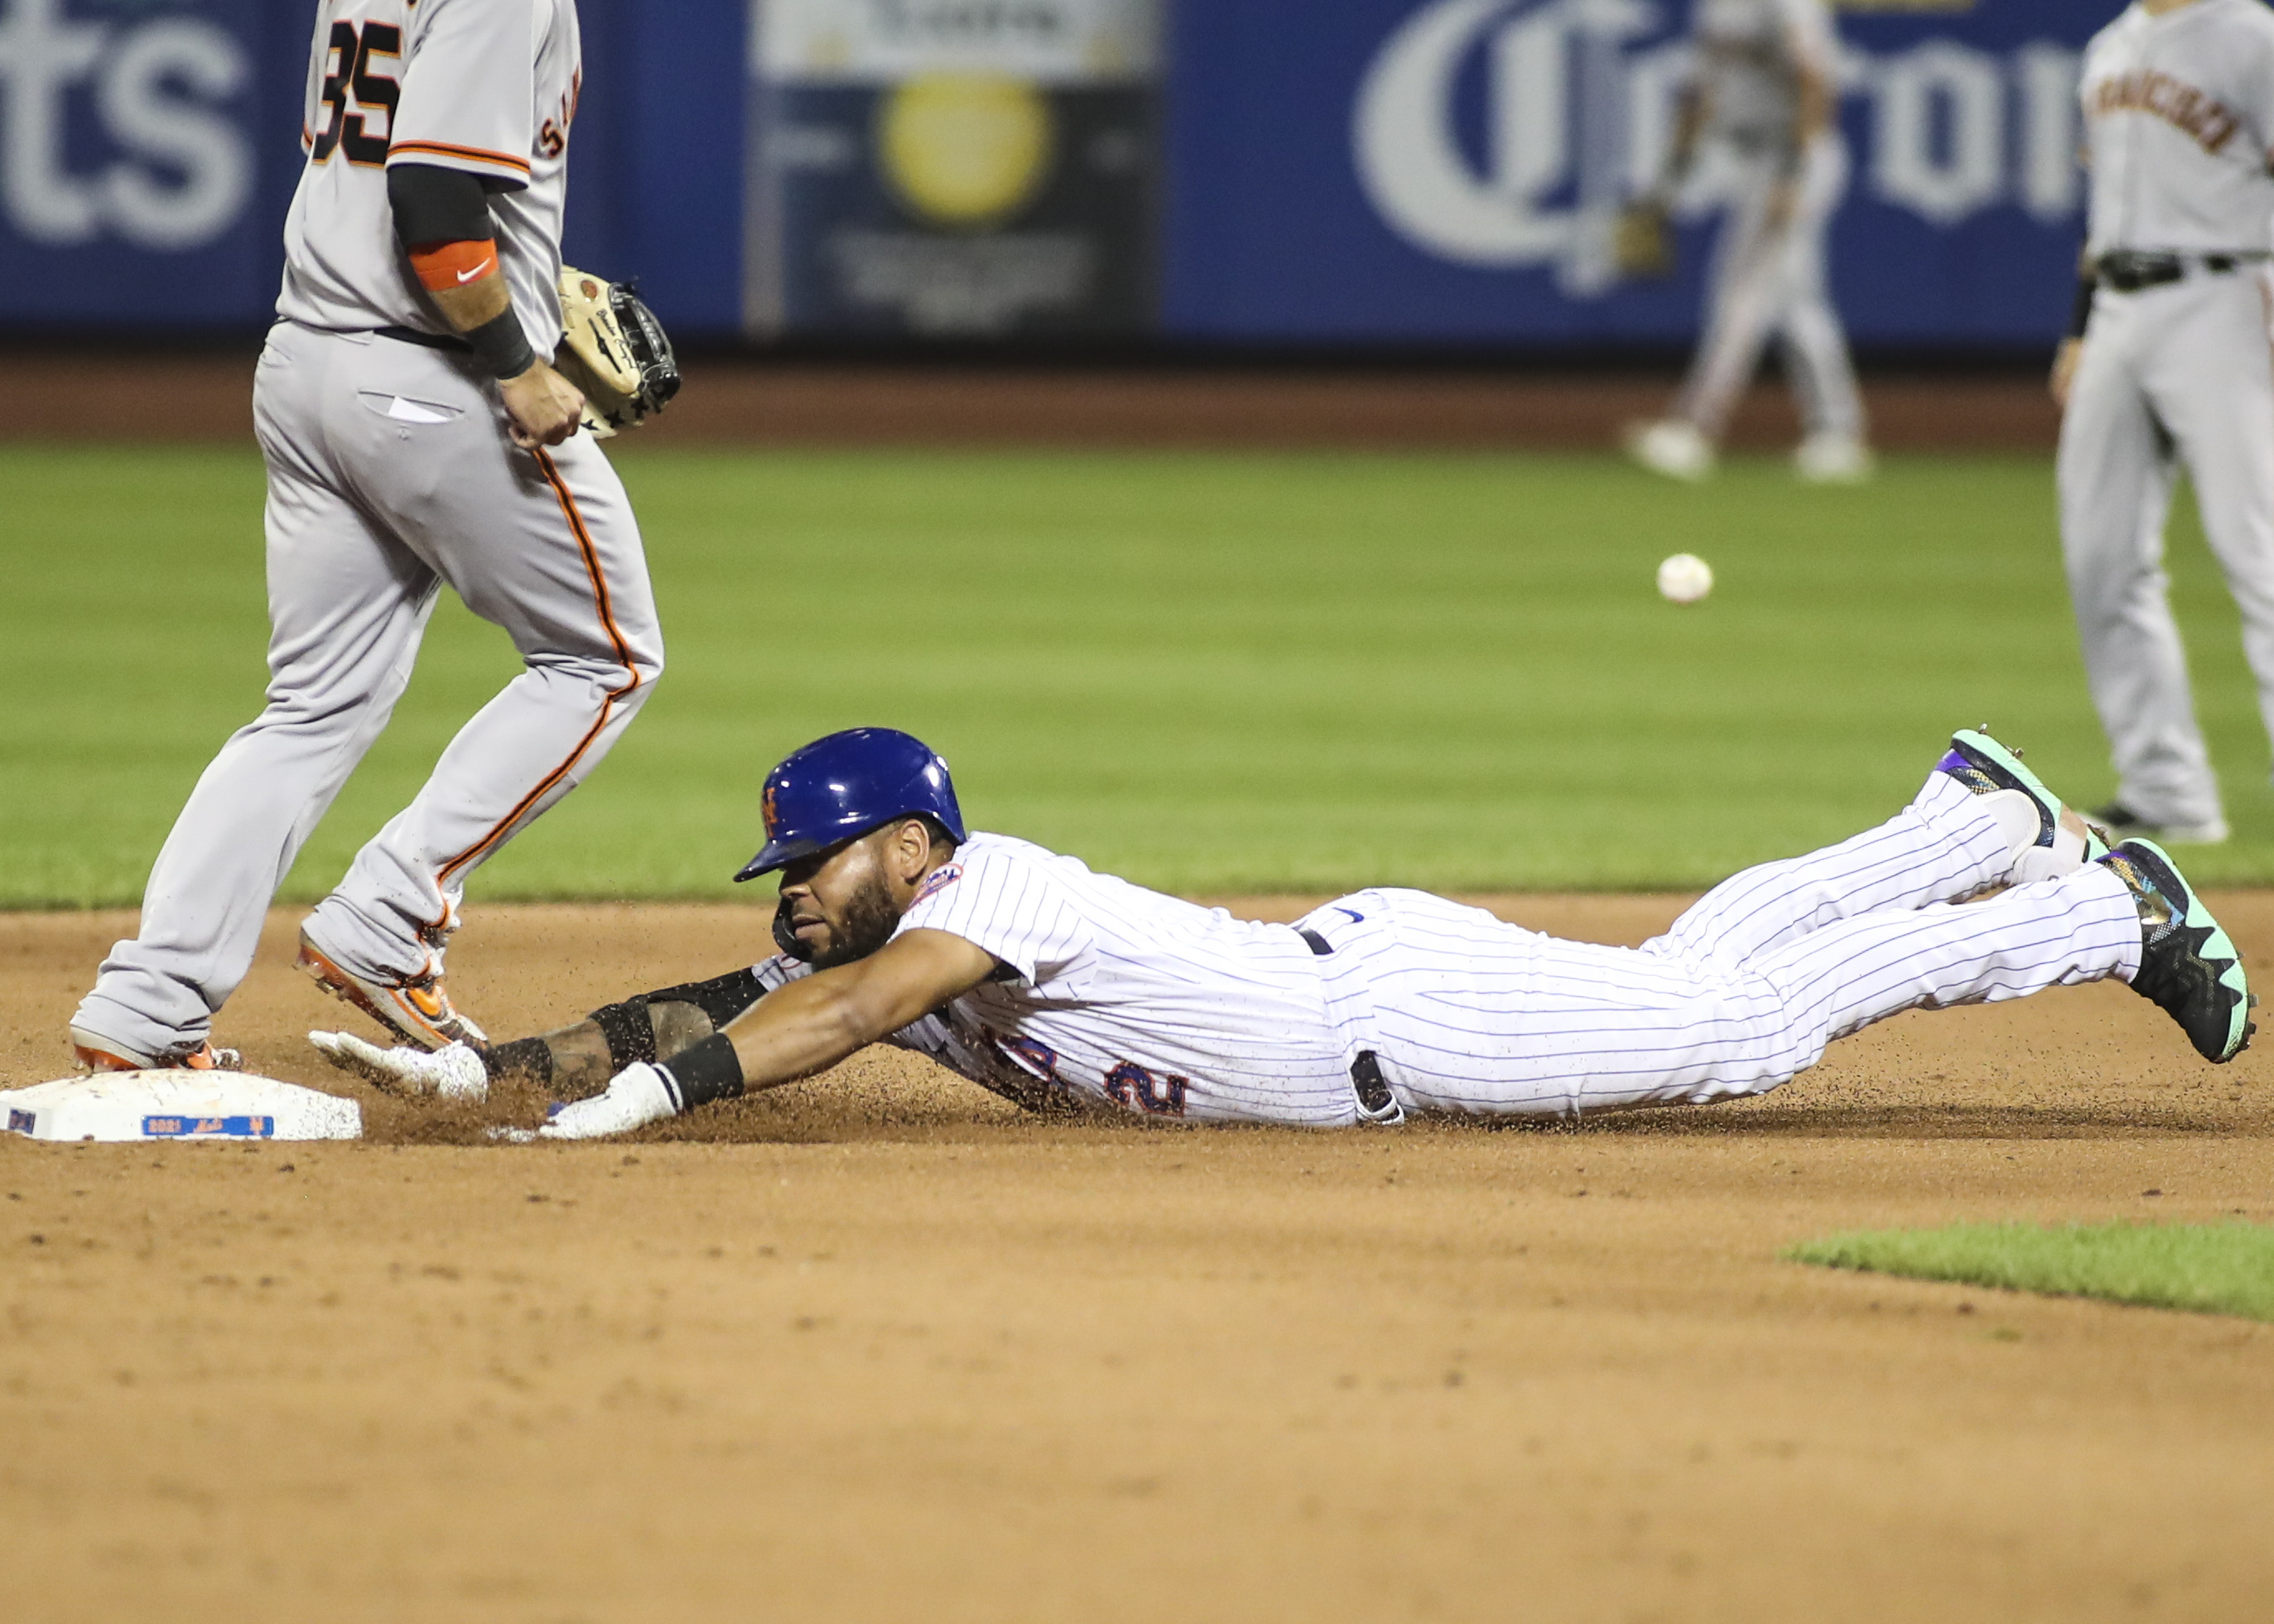 8/26/21 Game Preview: San Francisco Giants at New York Mets